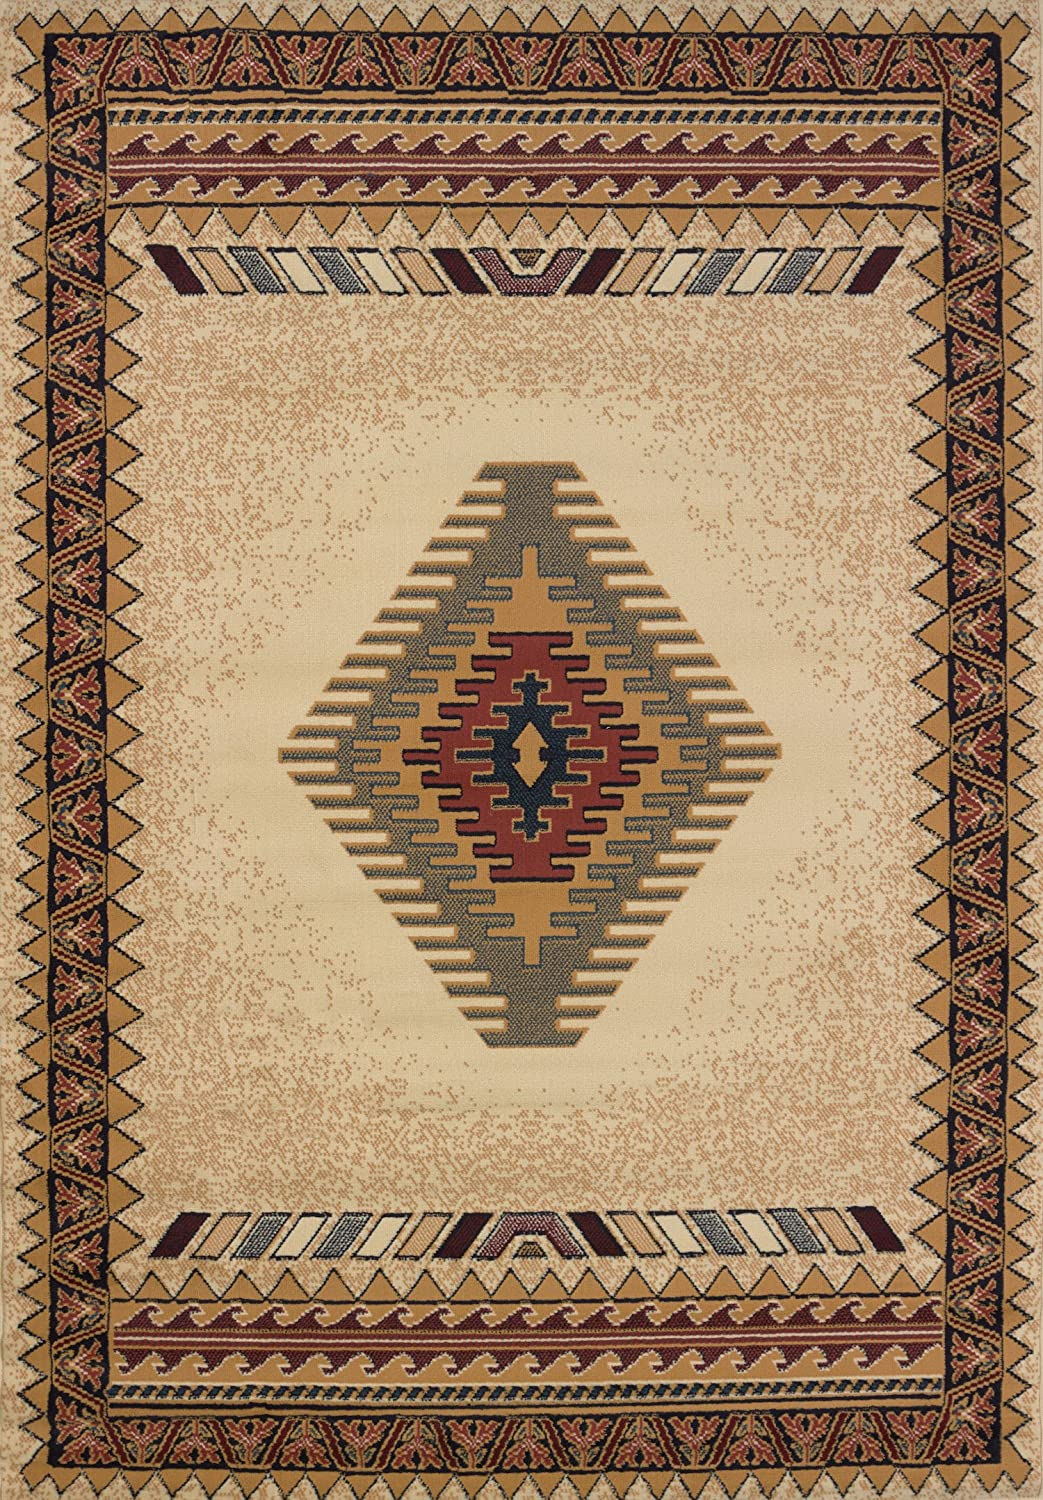 american for captivating native with flooring sale your rug rugs concept indian donslandscaping home